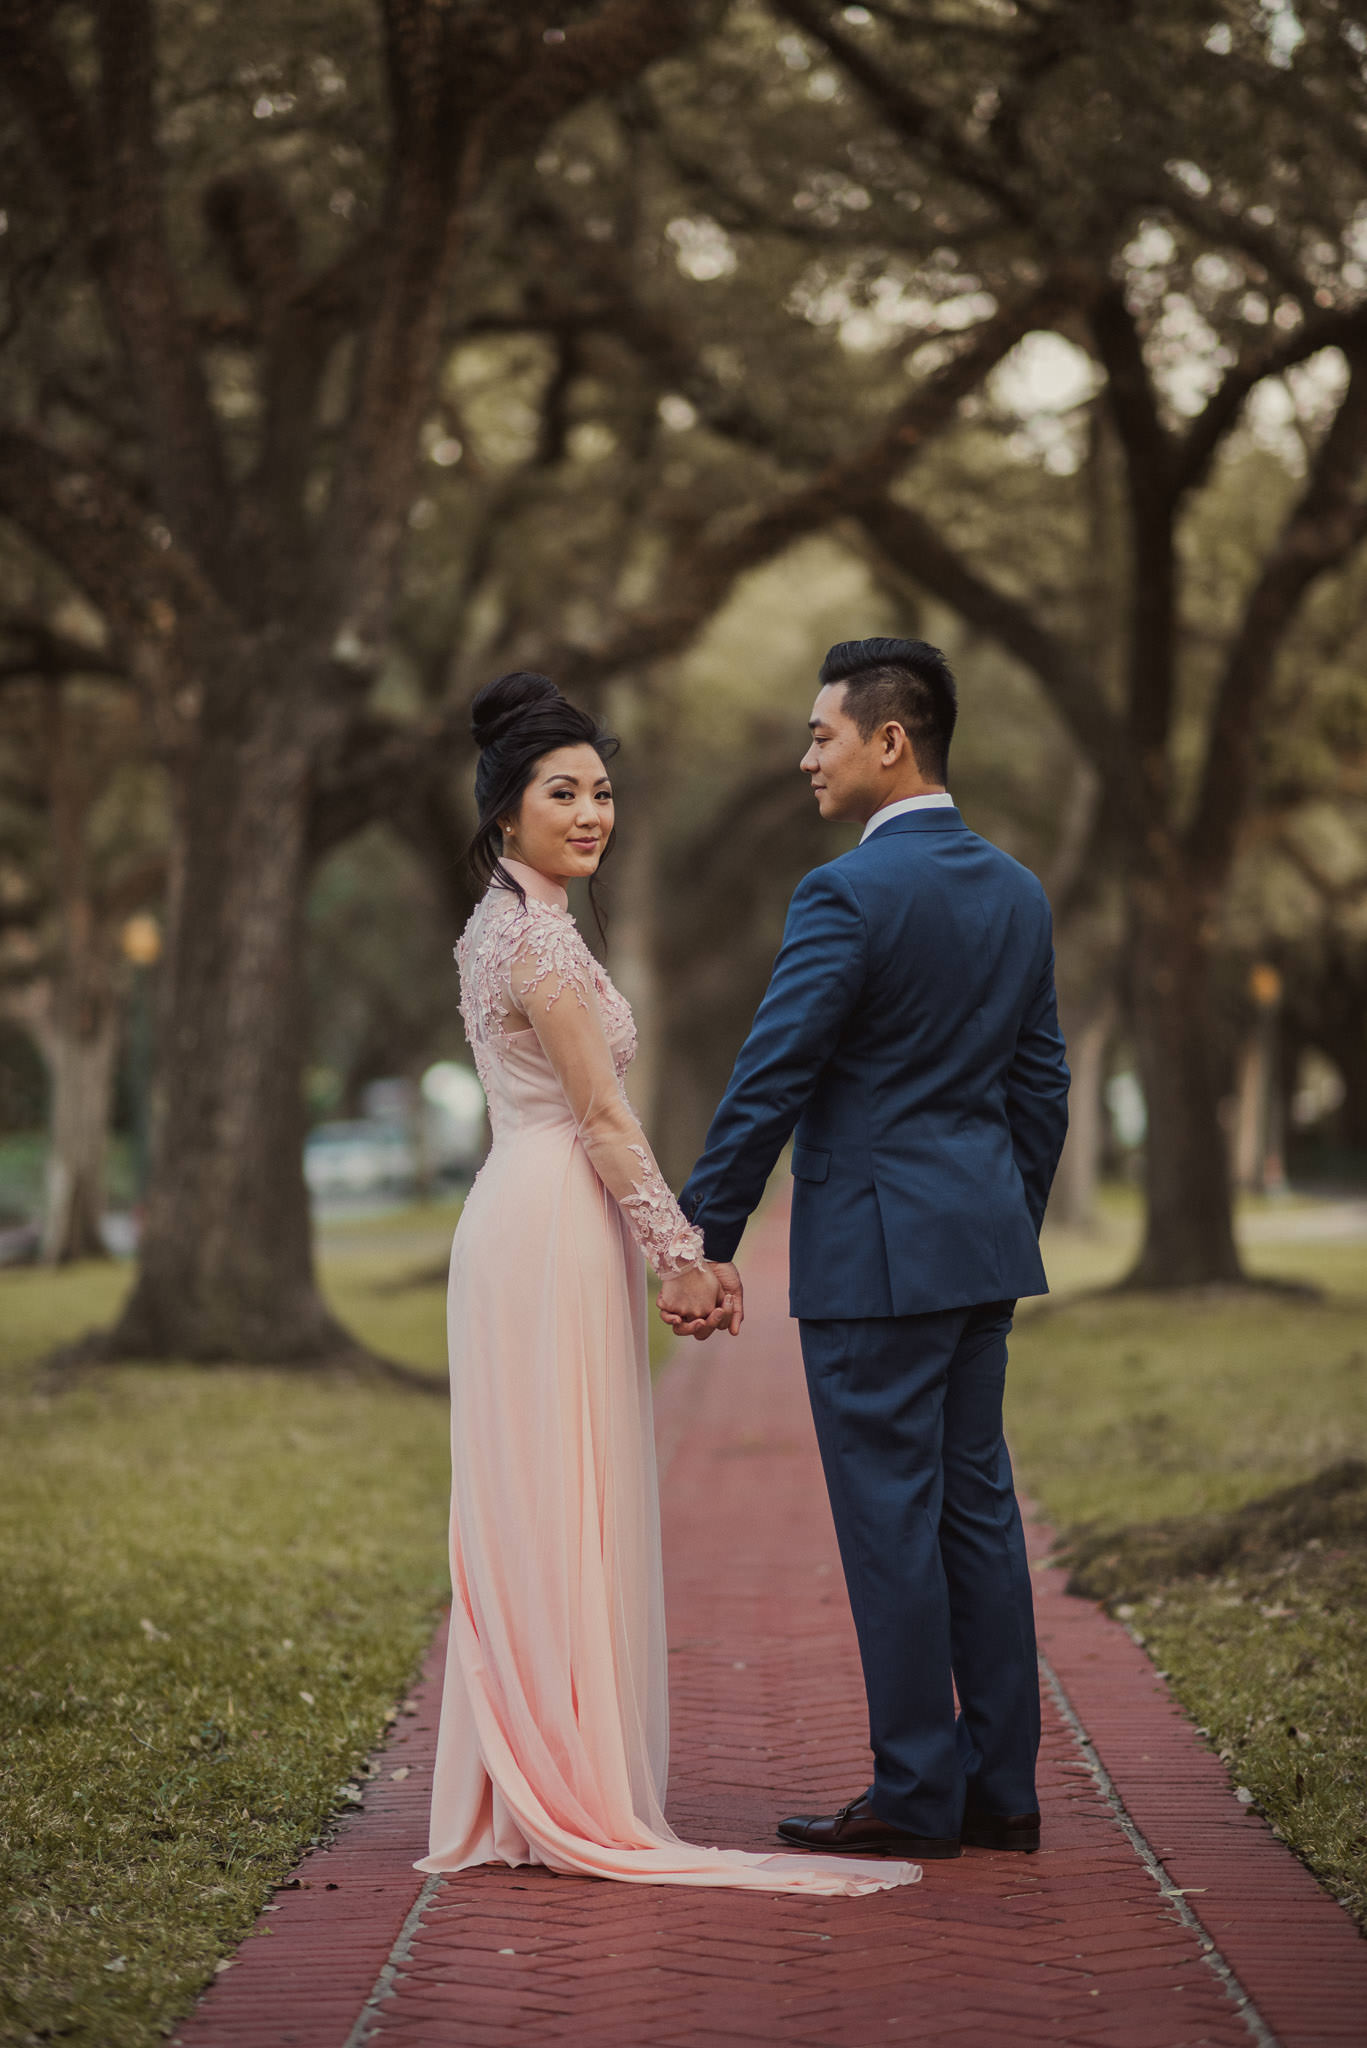 kim-michael-houston-vietnamese-tea-ceremony-engagement-downtown-boulevard-oaks-photographer-60.jpg